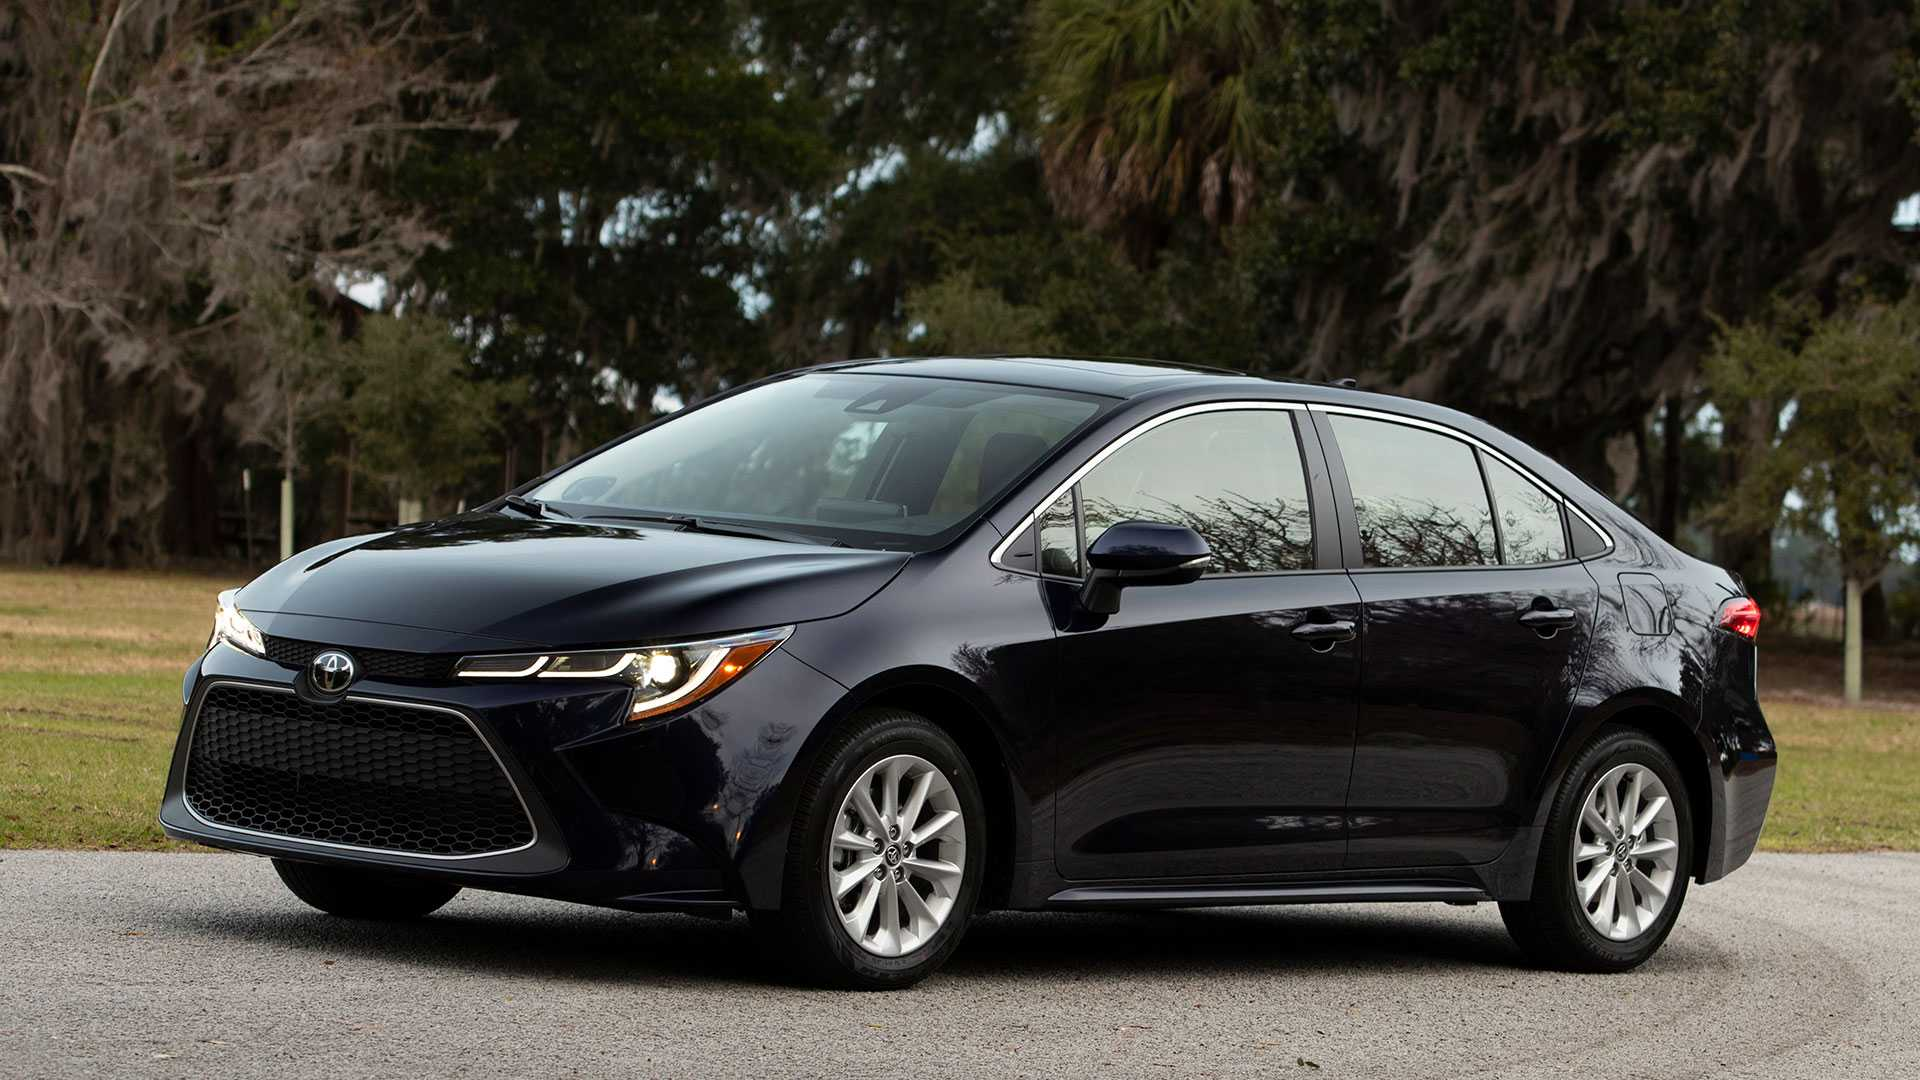 59 A 2020 Toyota Corolla Images